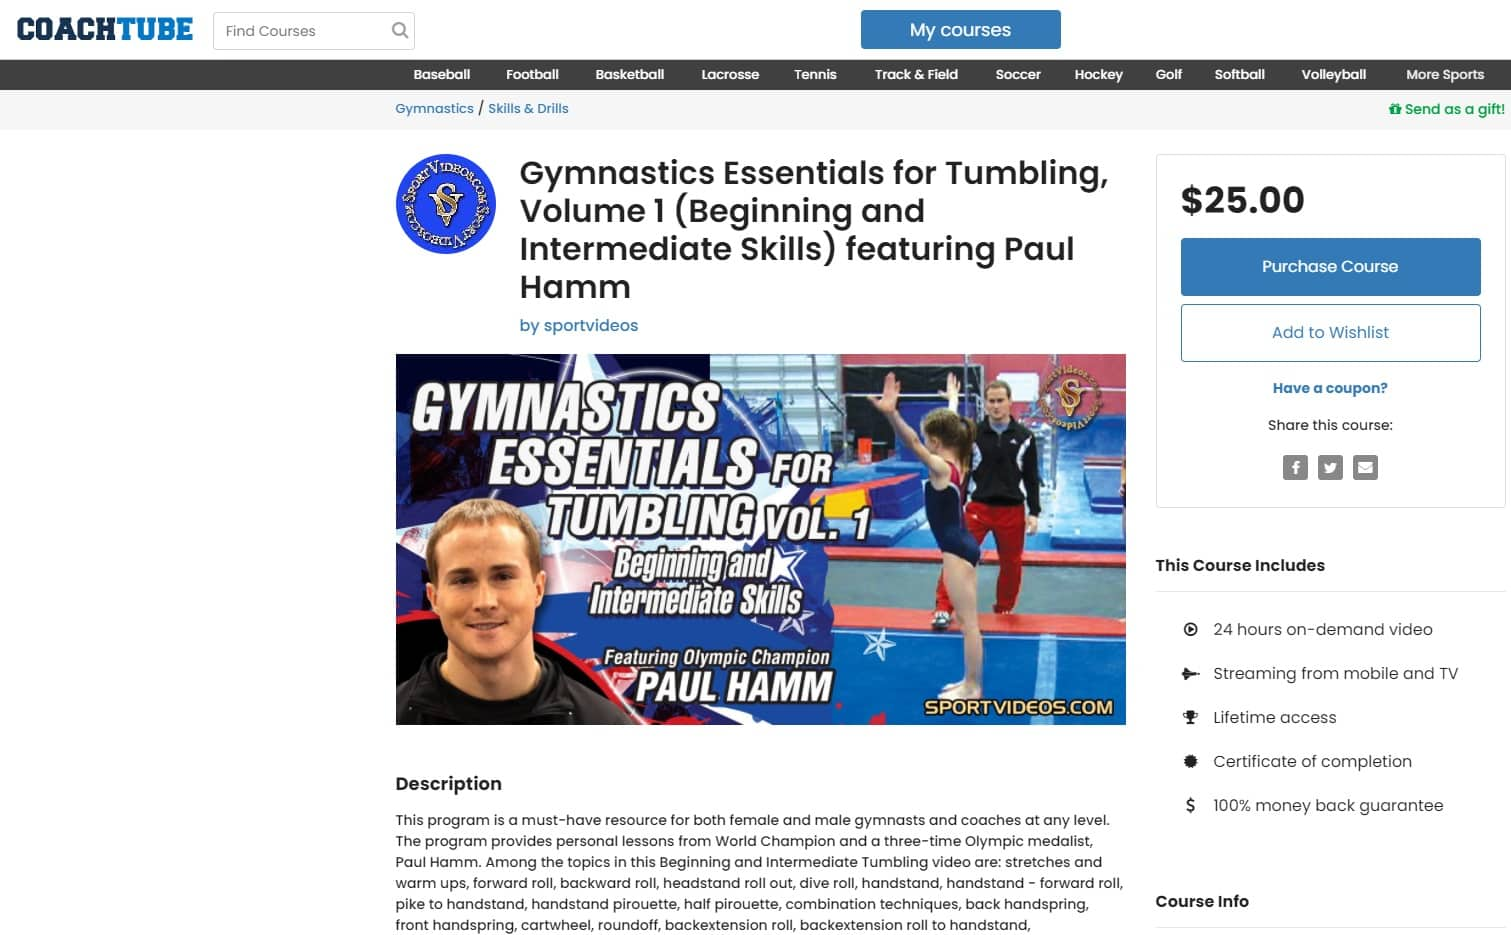 CoachTube Gymnastics Lessons for Beginners